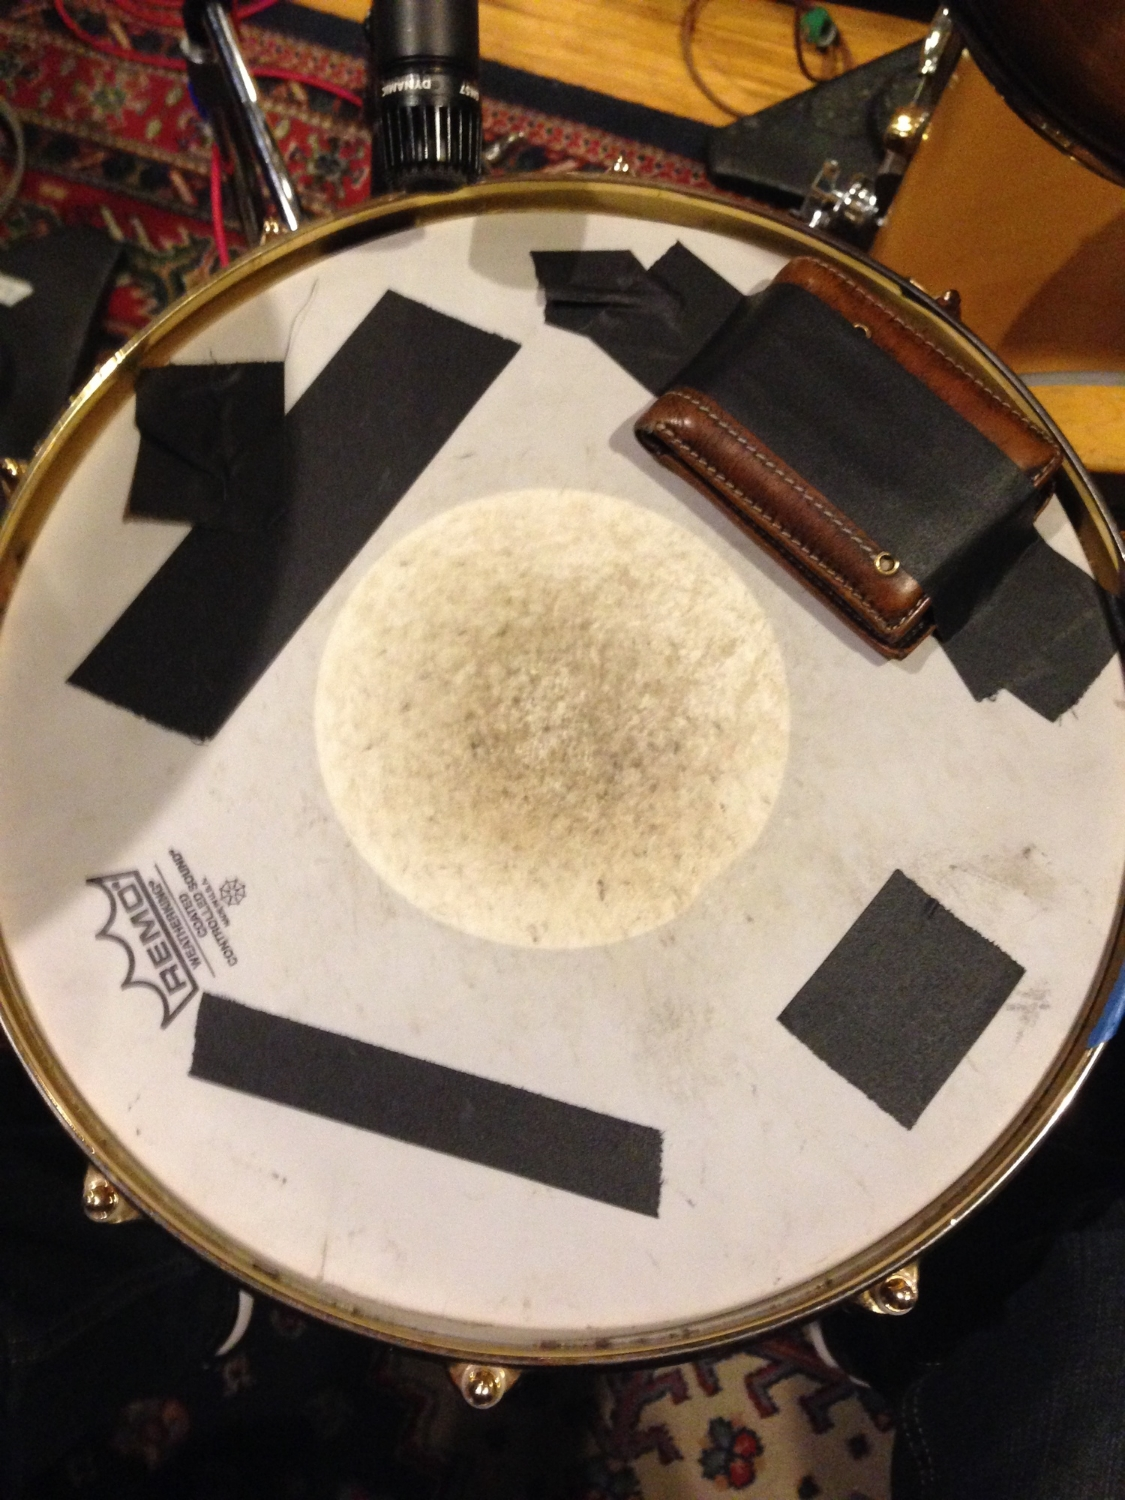 Tim Clausen's snare drum rig, getting rid of the ringing Db with wallet